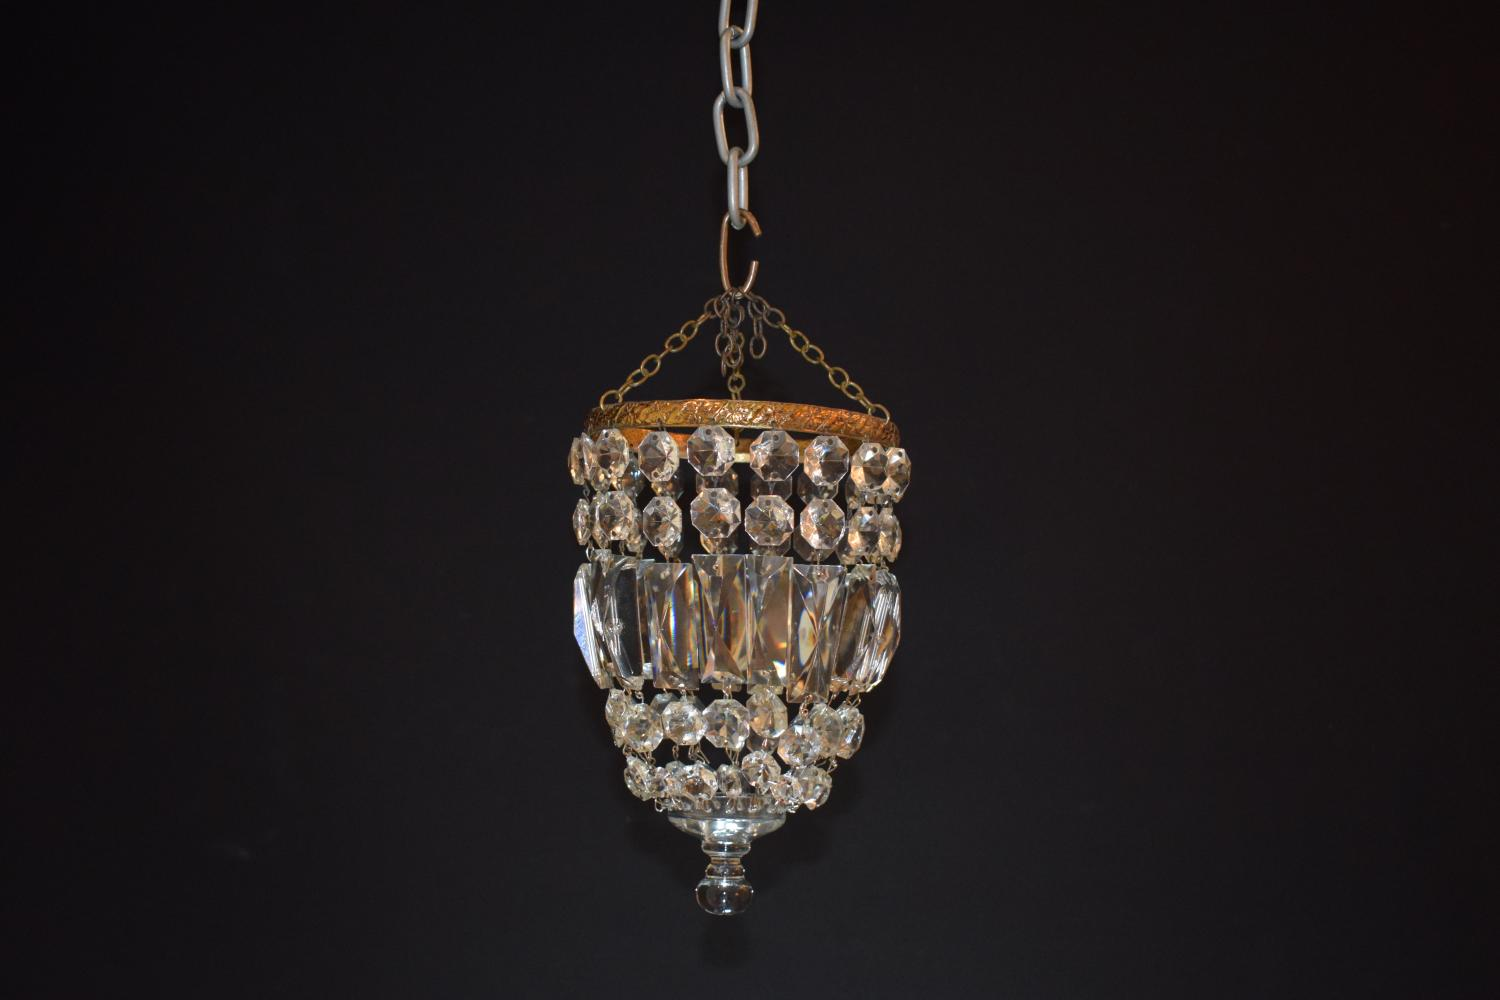 A small icicle drop chandelier